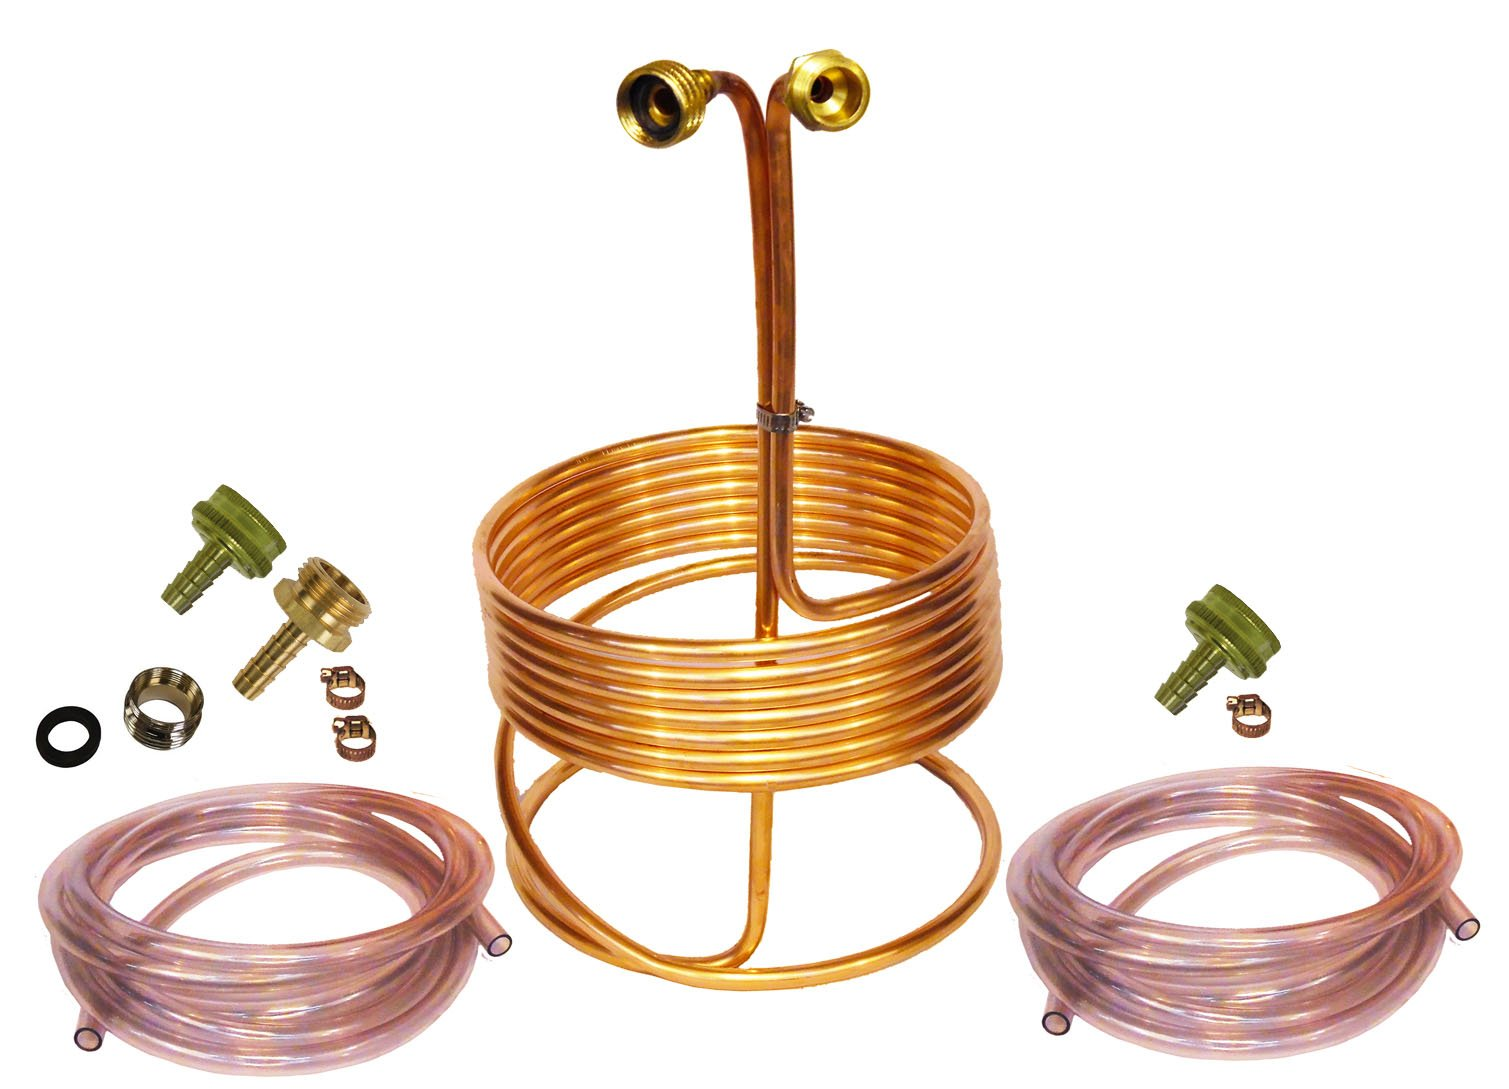 HomeBrewStuff 25' Copper Immersion Wort Chiller - Deluxe Package with 2X 12' Hoses, Fittings, and Faucet Adapter by Home Brew Stuff